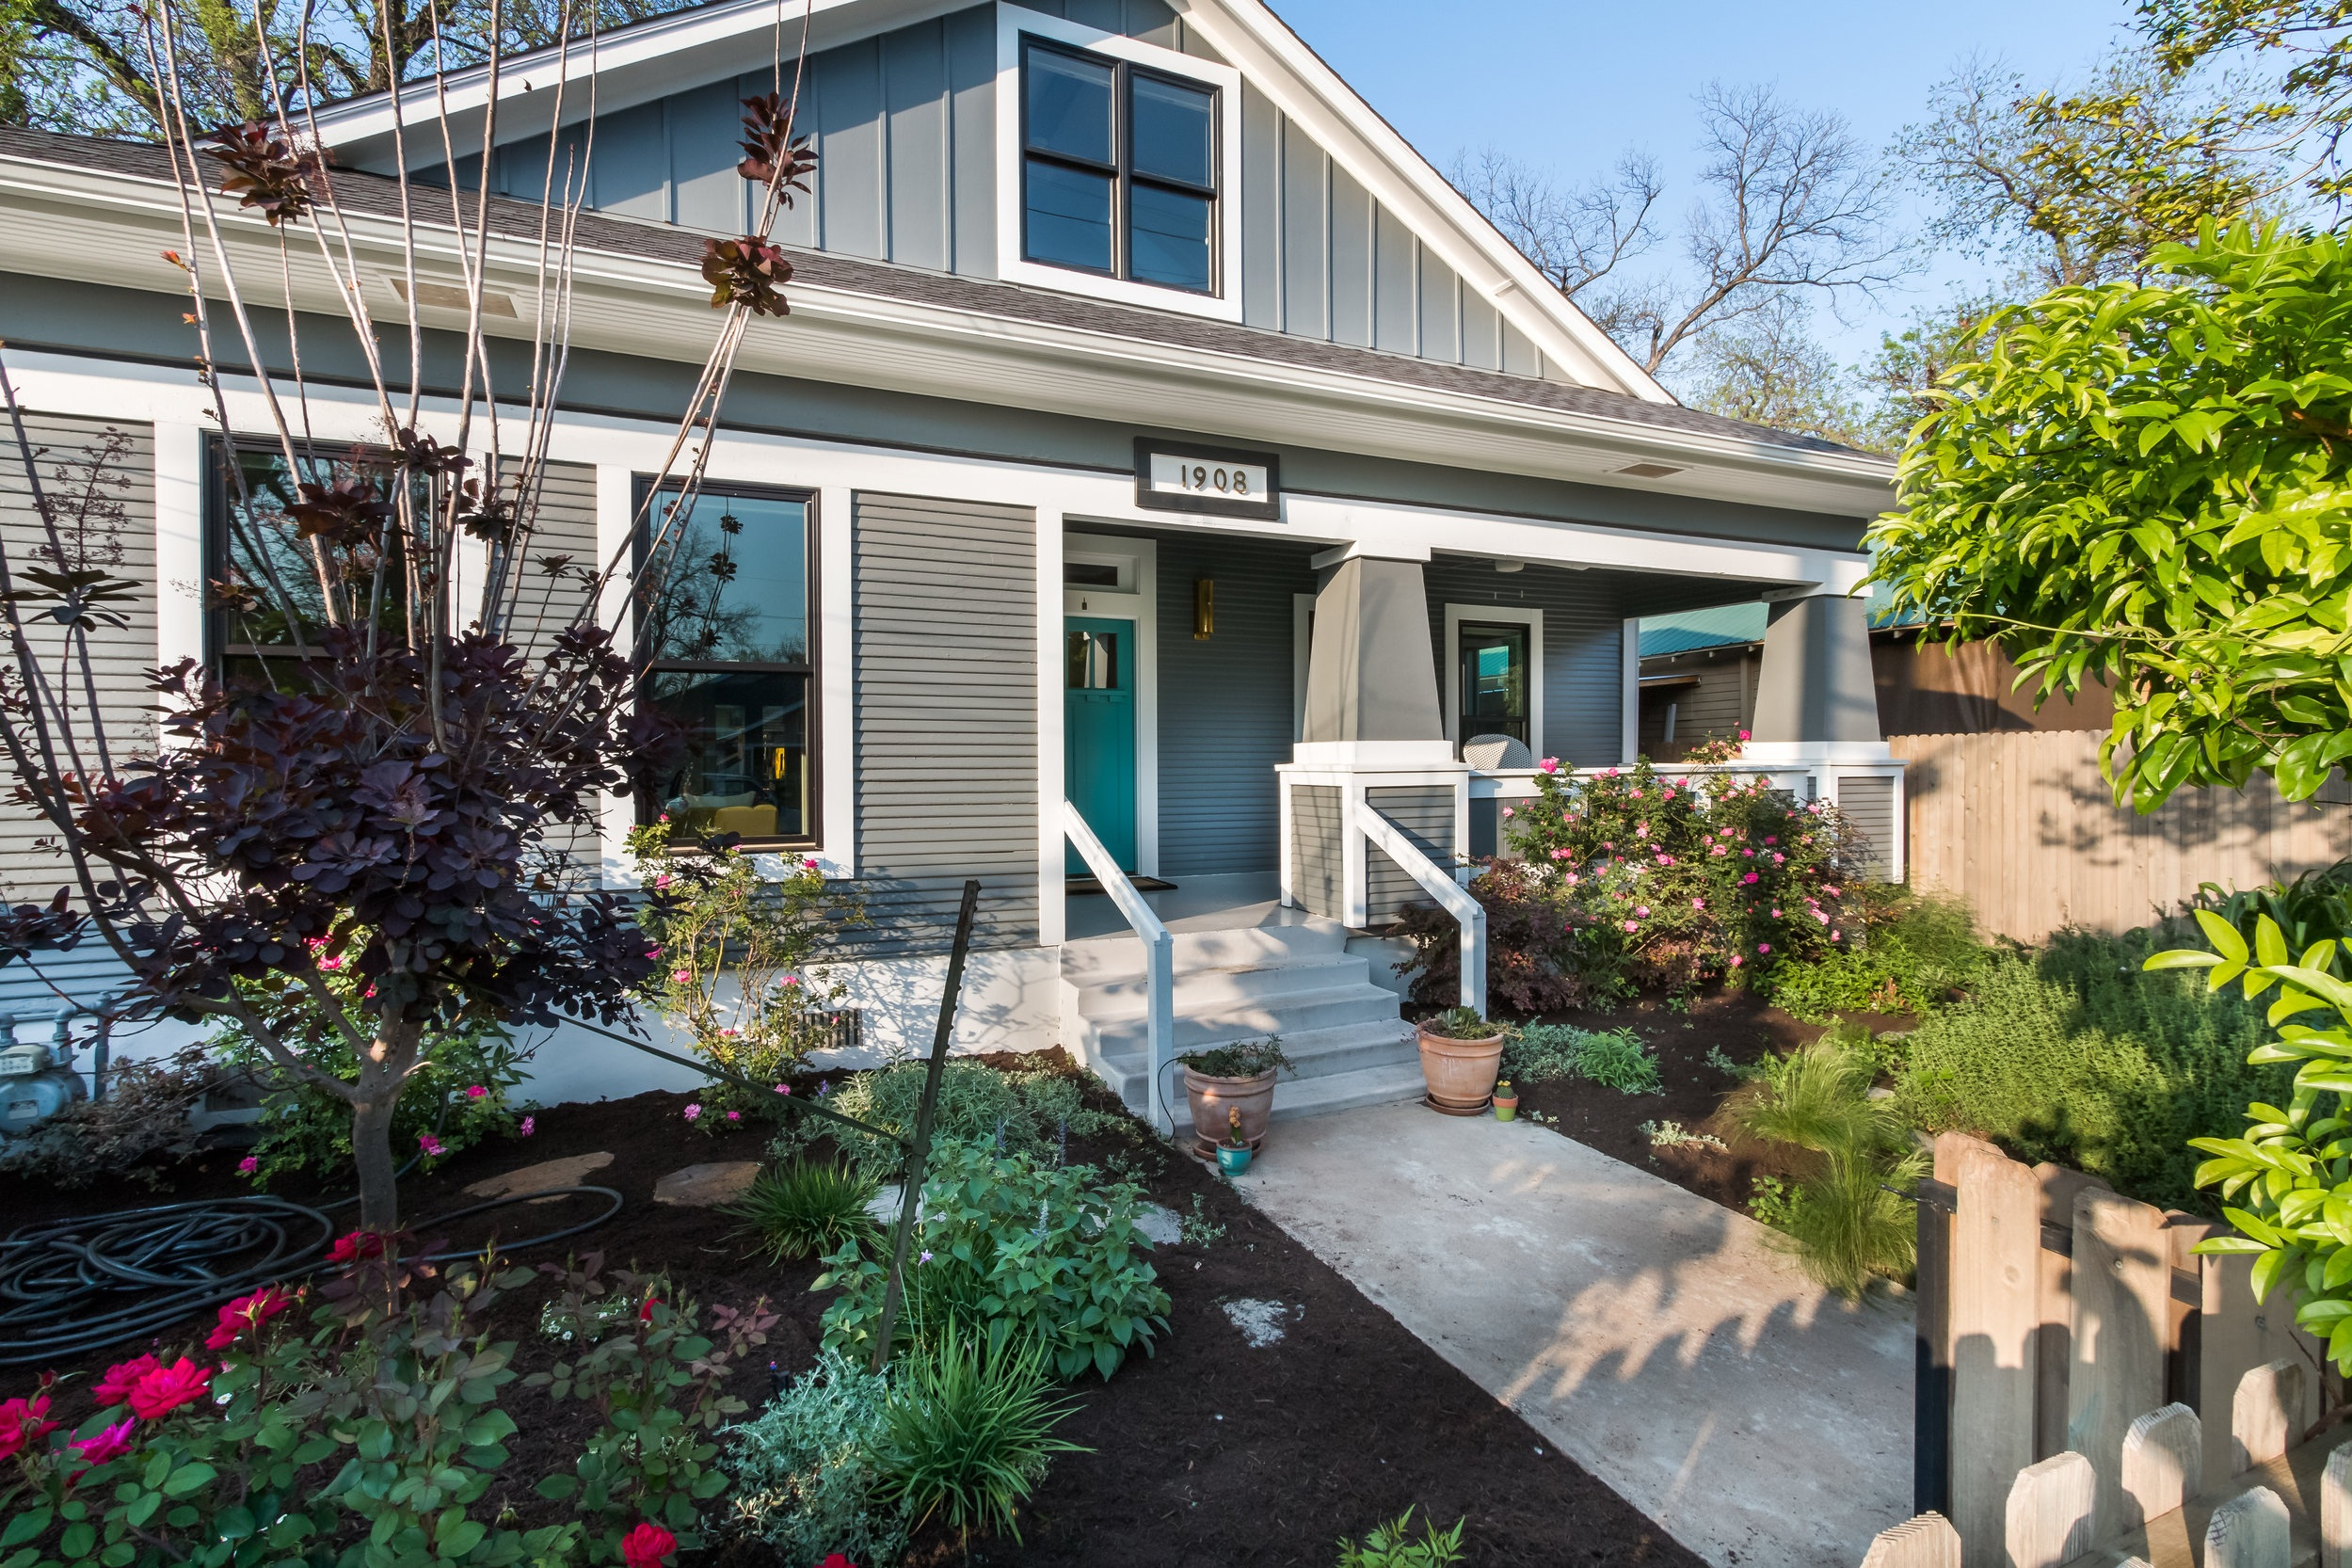 LISTED FOR $749,000